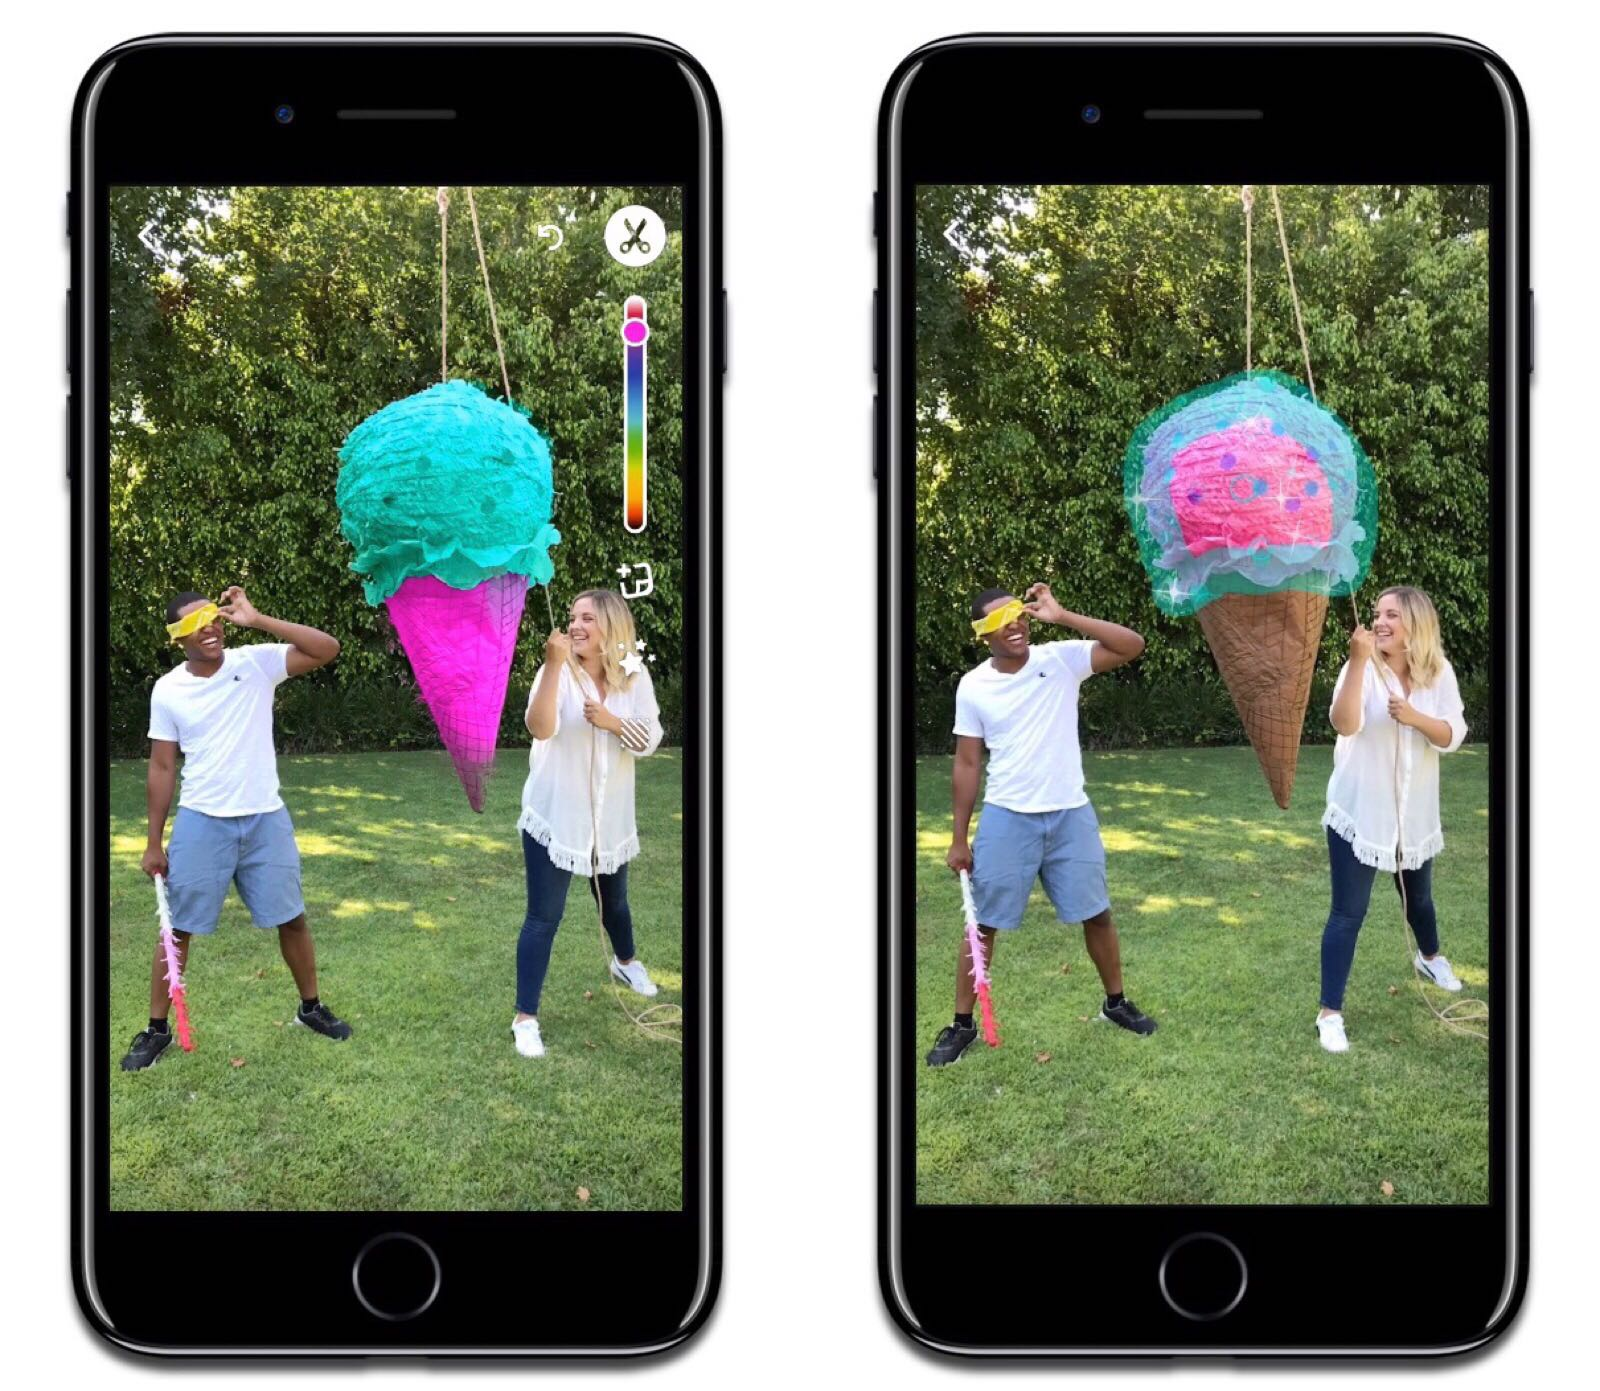 Tint Brush is one of the new Snapchat features that gives you selective color editing. Image credit: TechCrunch.